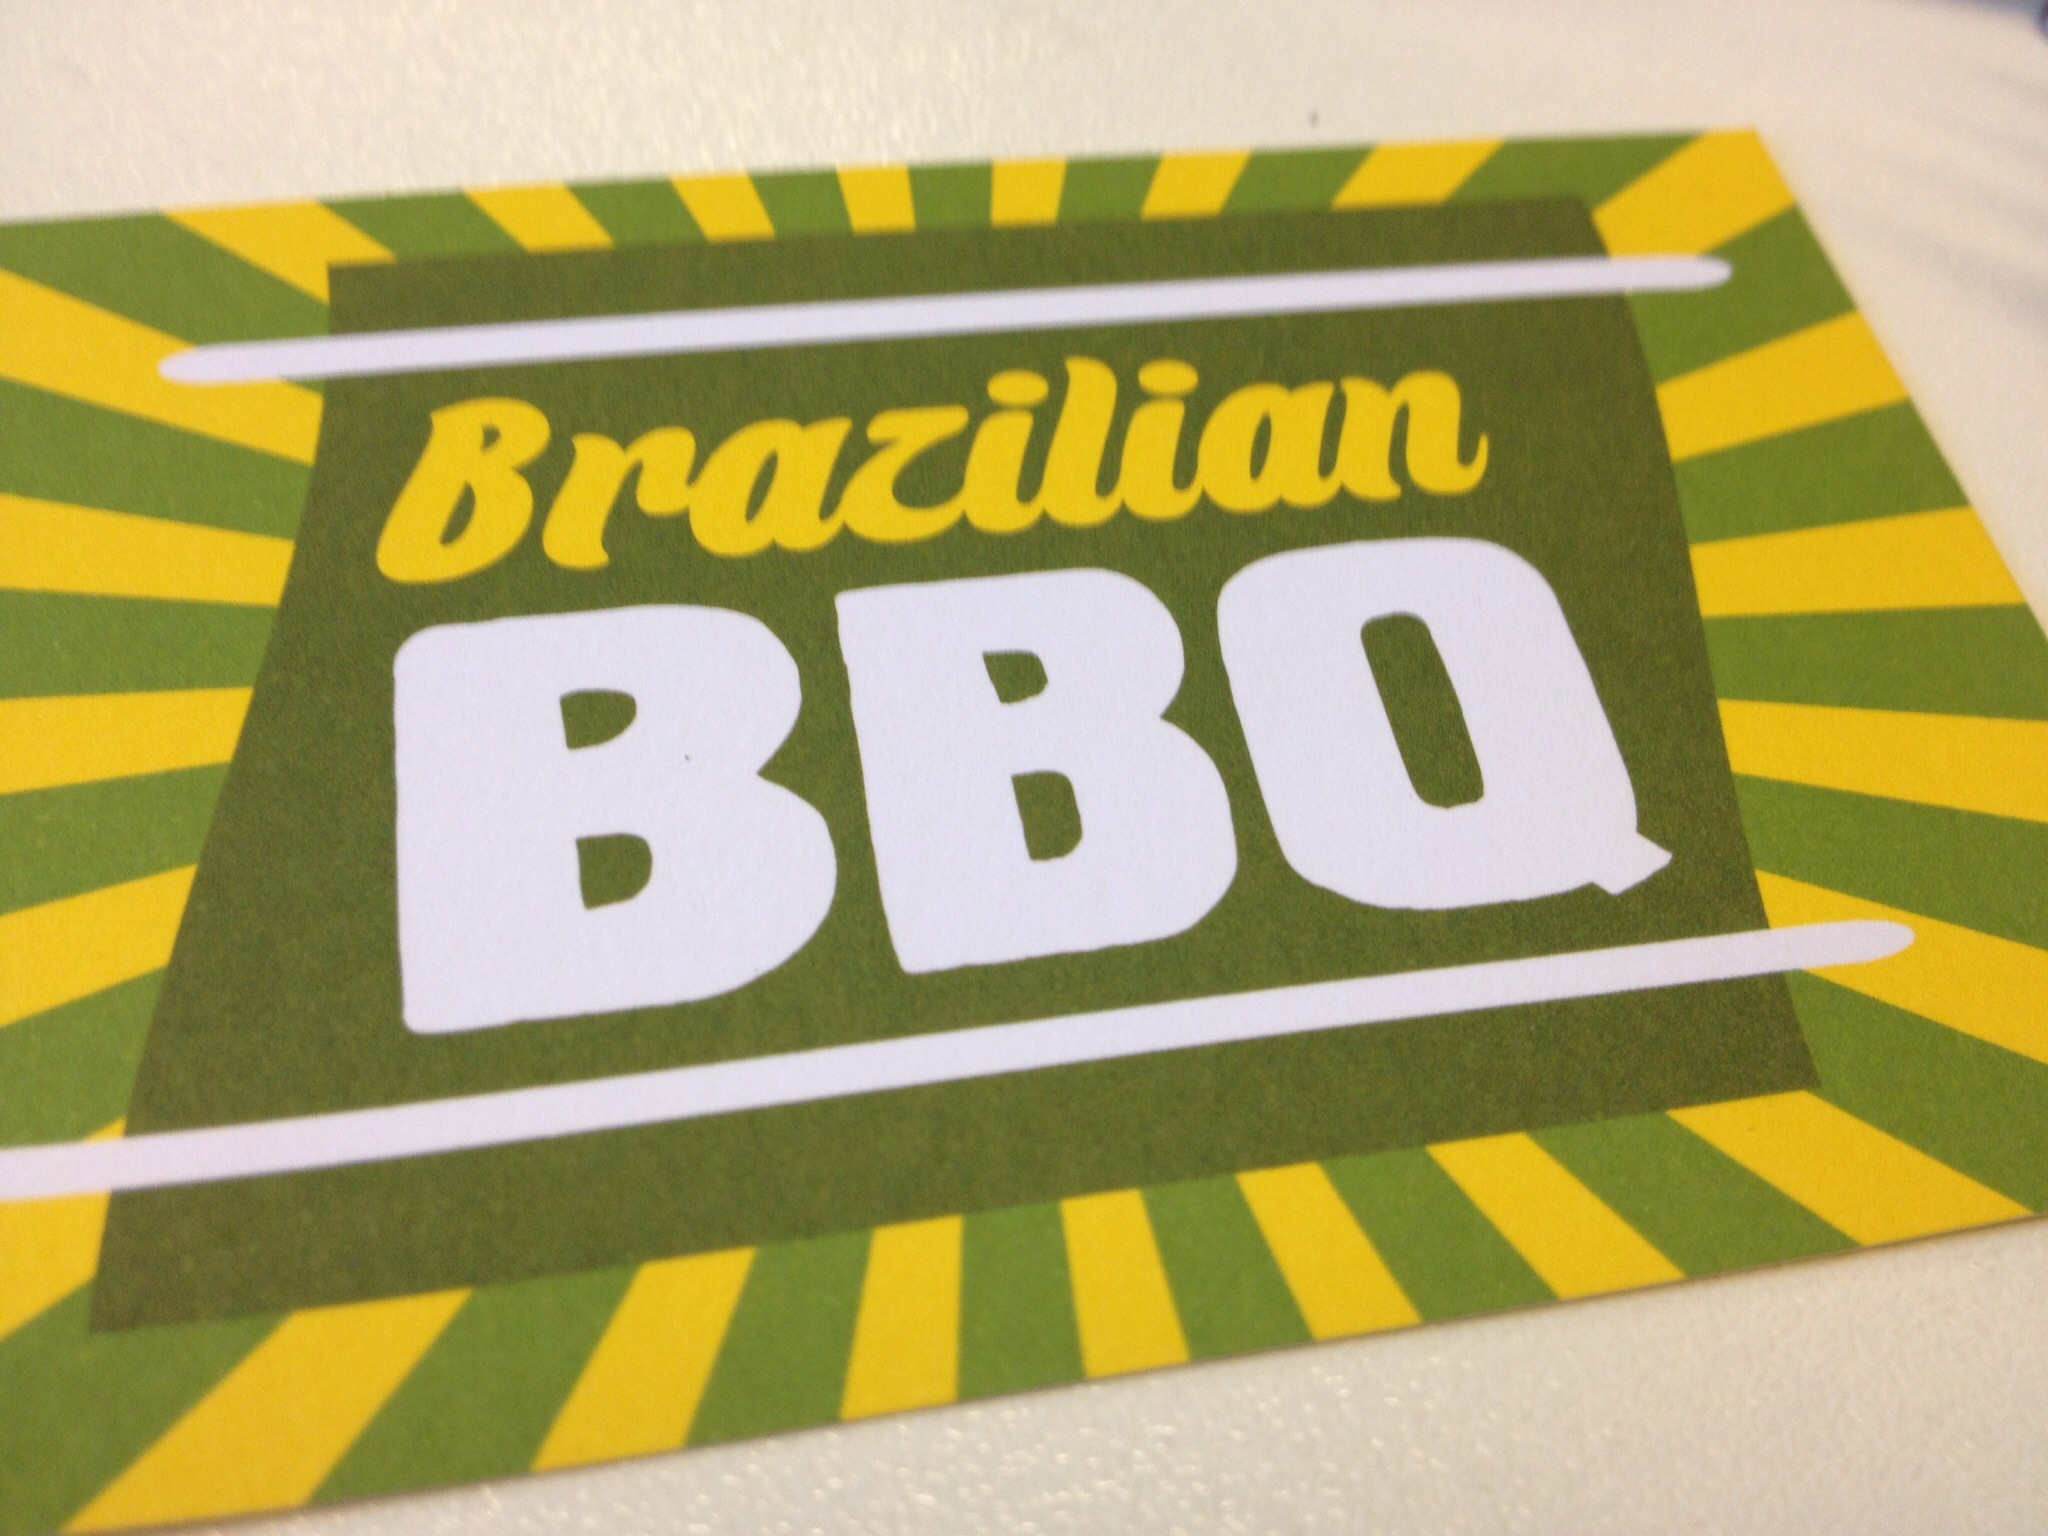 Brazilian BBQ Leather Lane